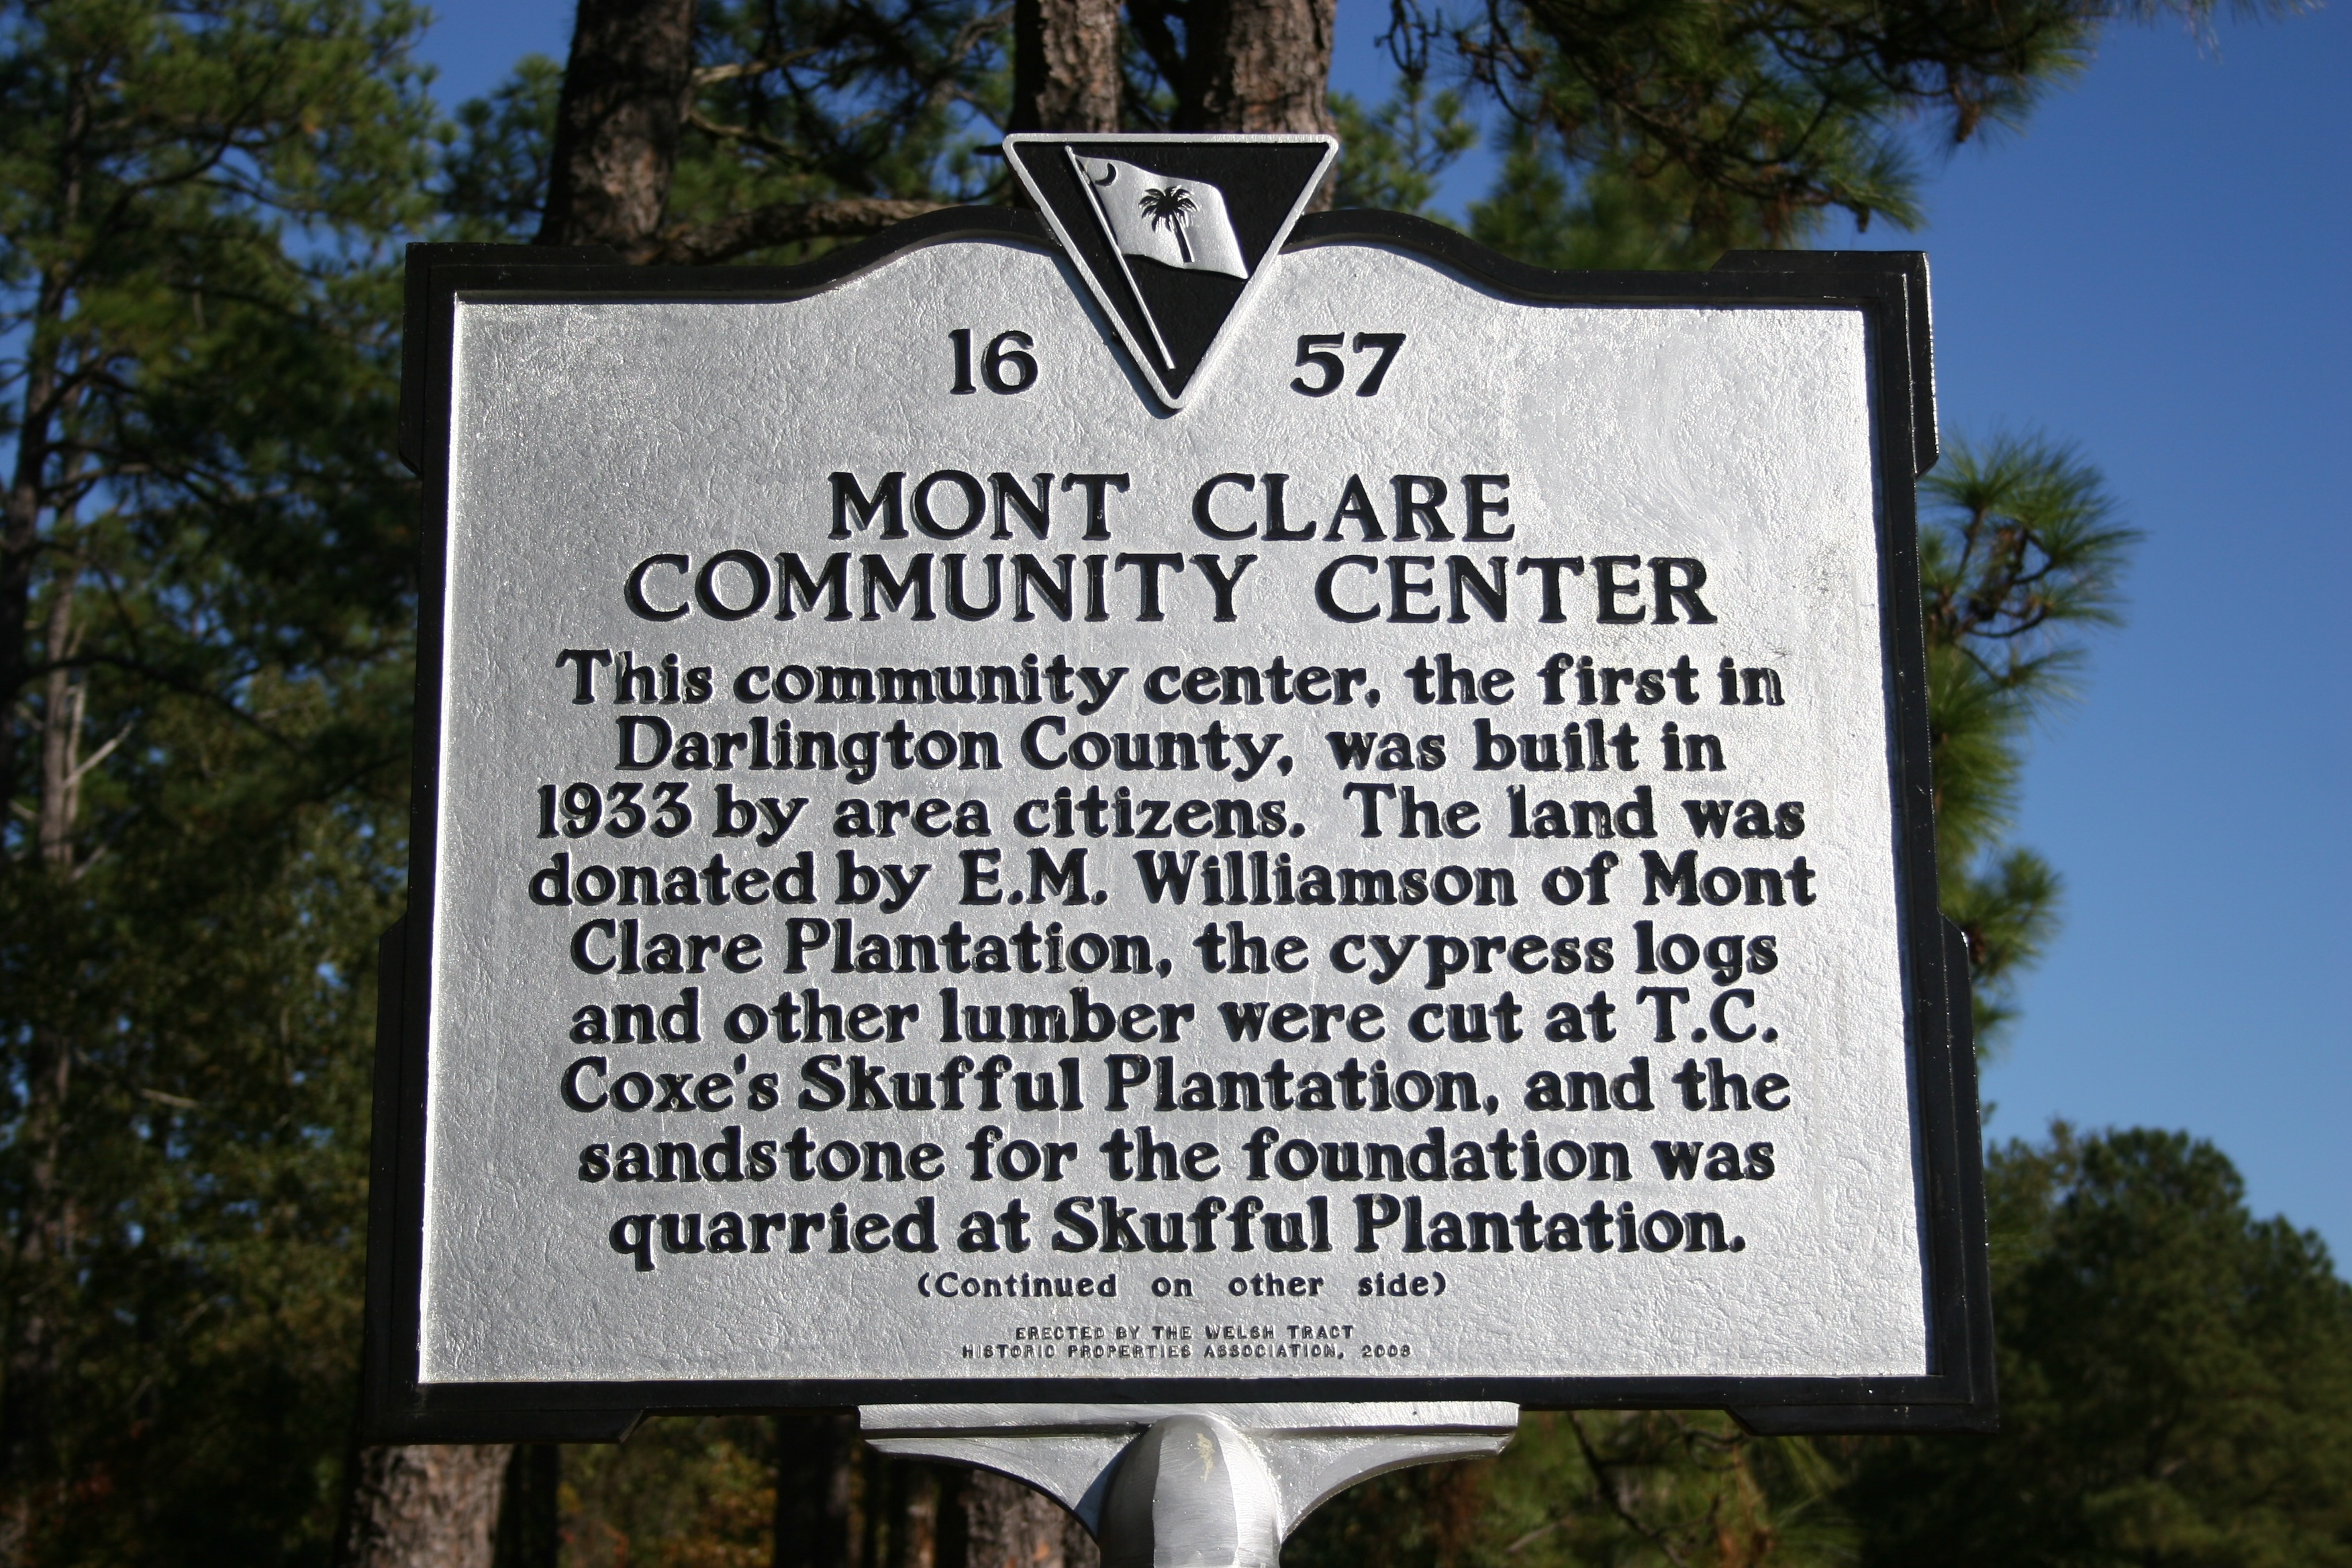 Mont Clare Community Center Marker (Side A)